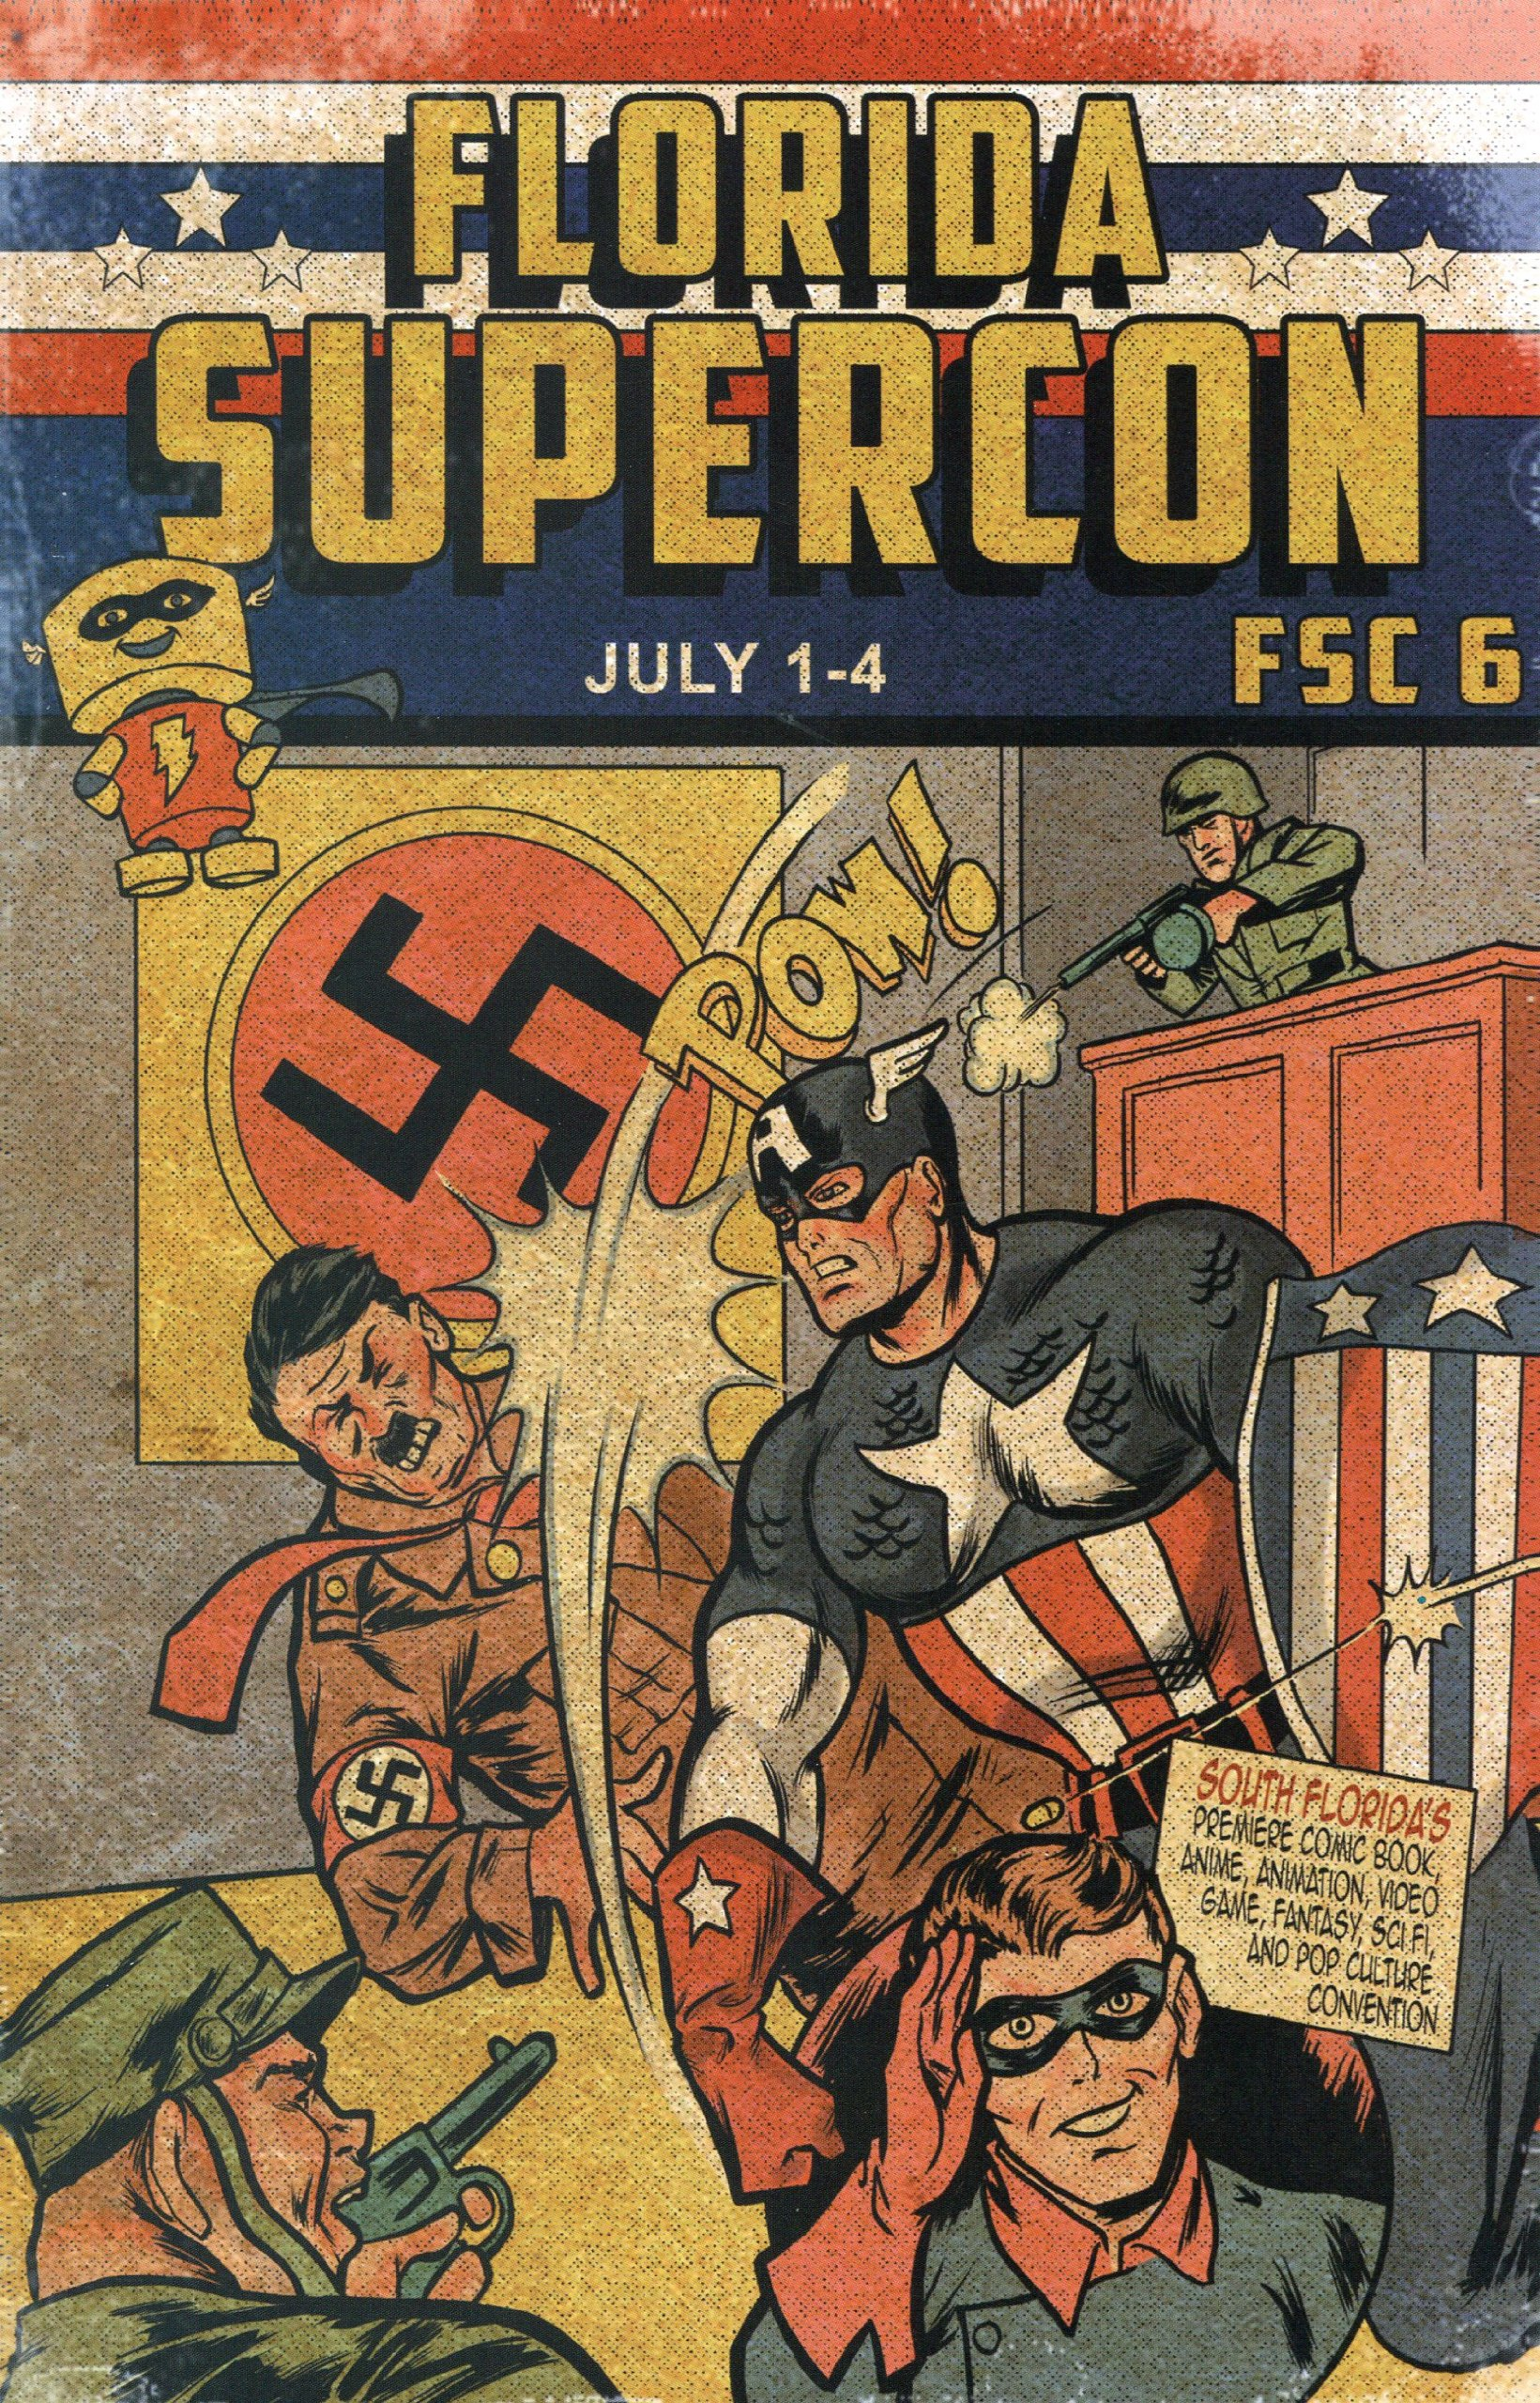 2011 Florida Supercon Program/Guide Captain America Cover